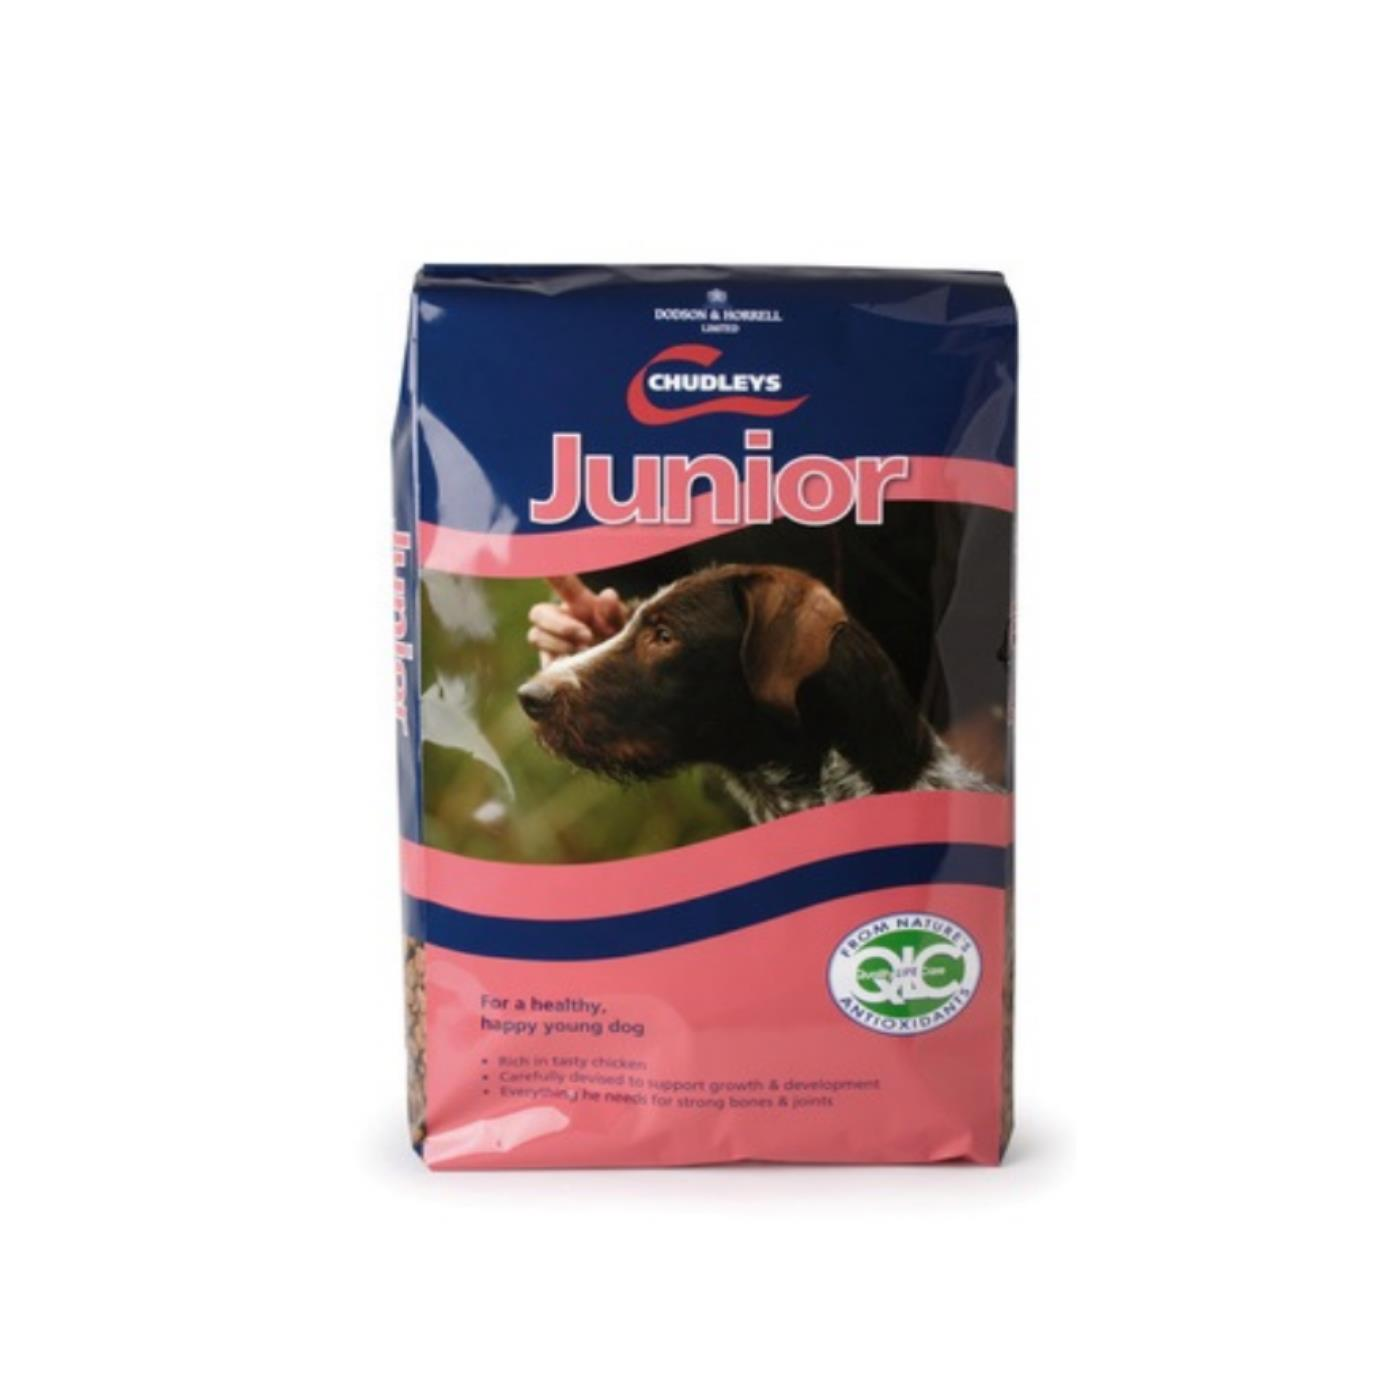 Chudleys Puppy Junior Dog Food  Kg